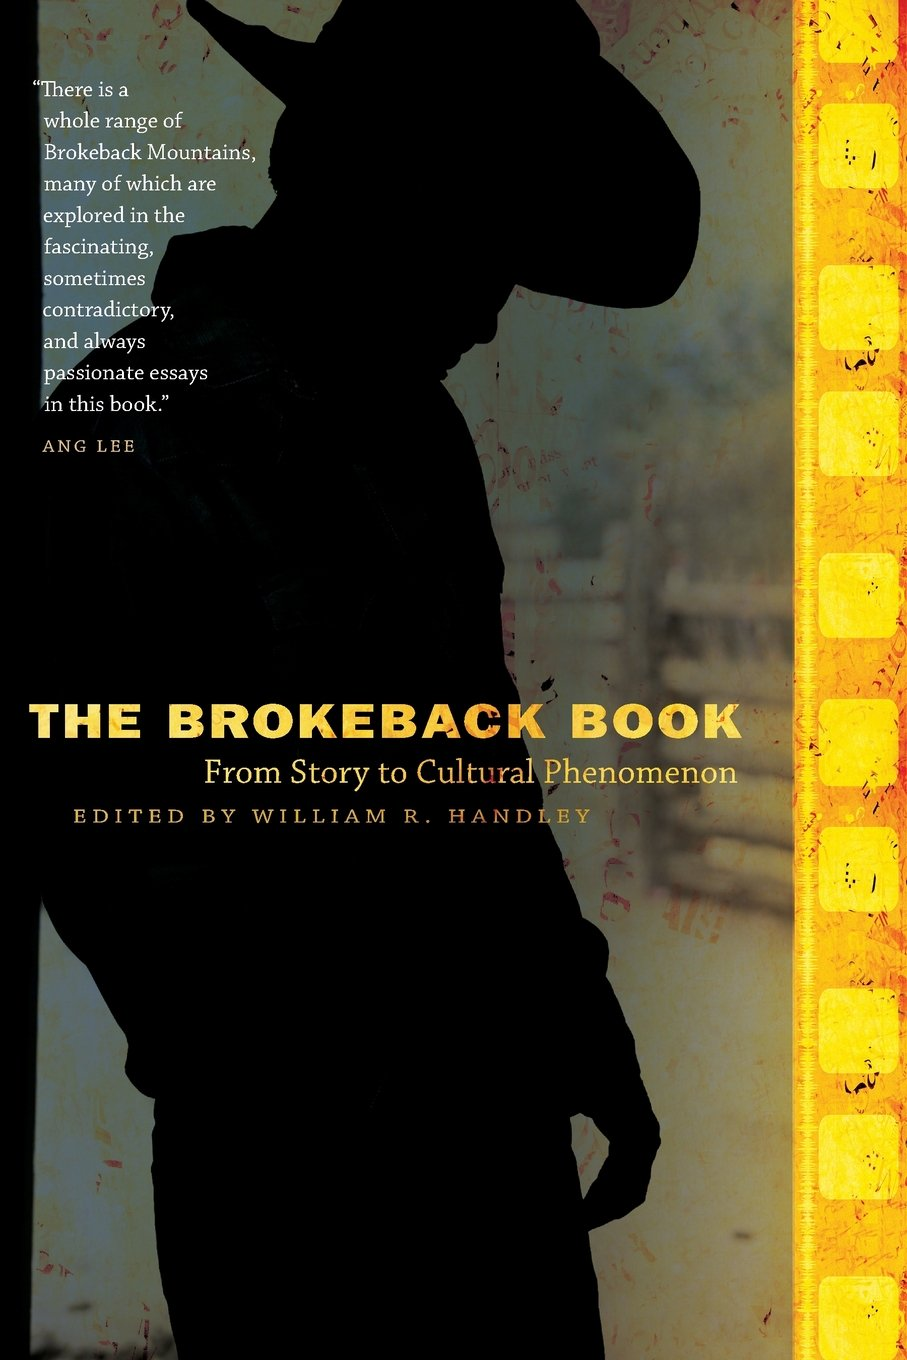 The Brokeback Book: From Story to Cultural Phenomenon: William R. Handley:  9780803226647: Amazon.com: Books